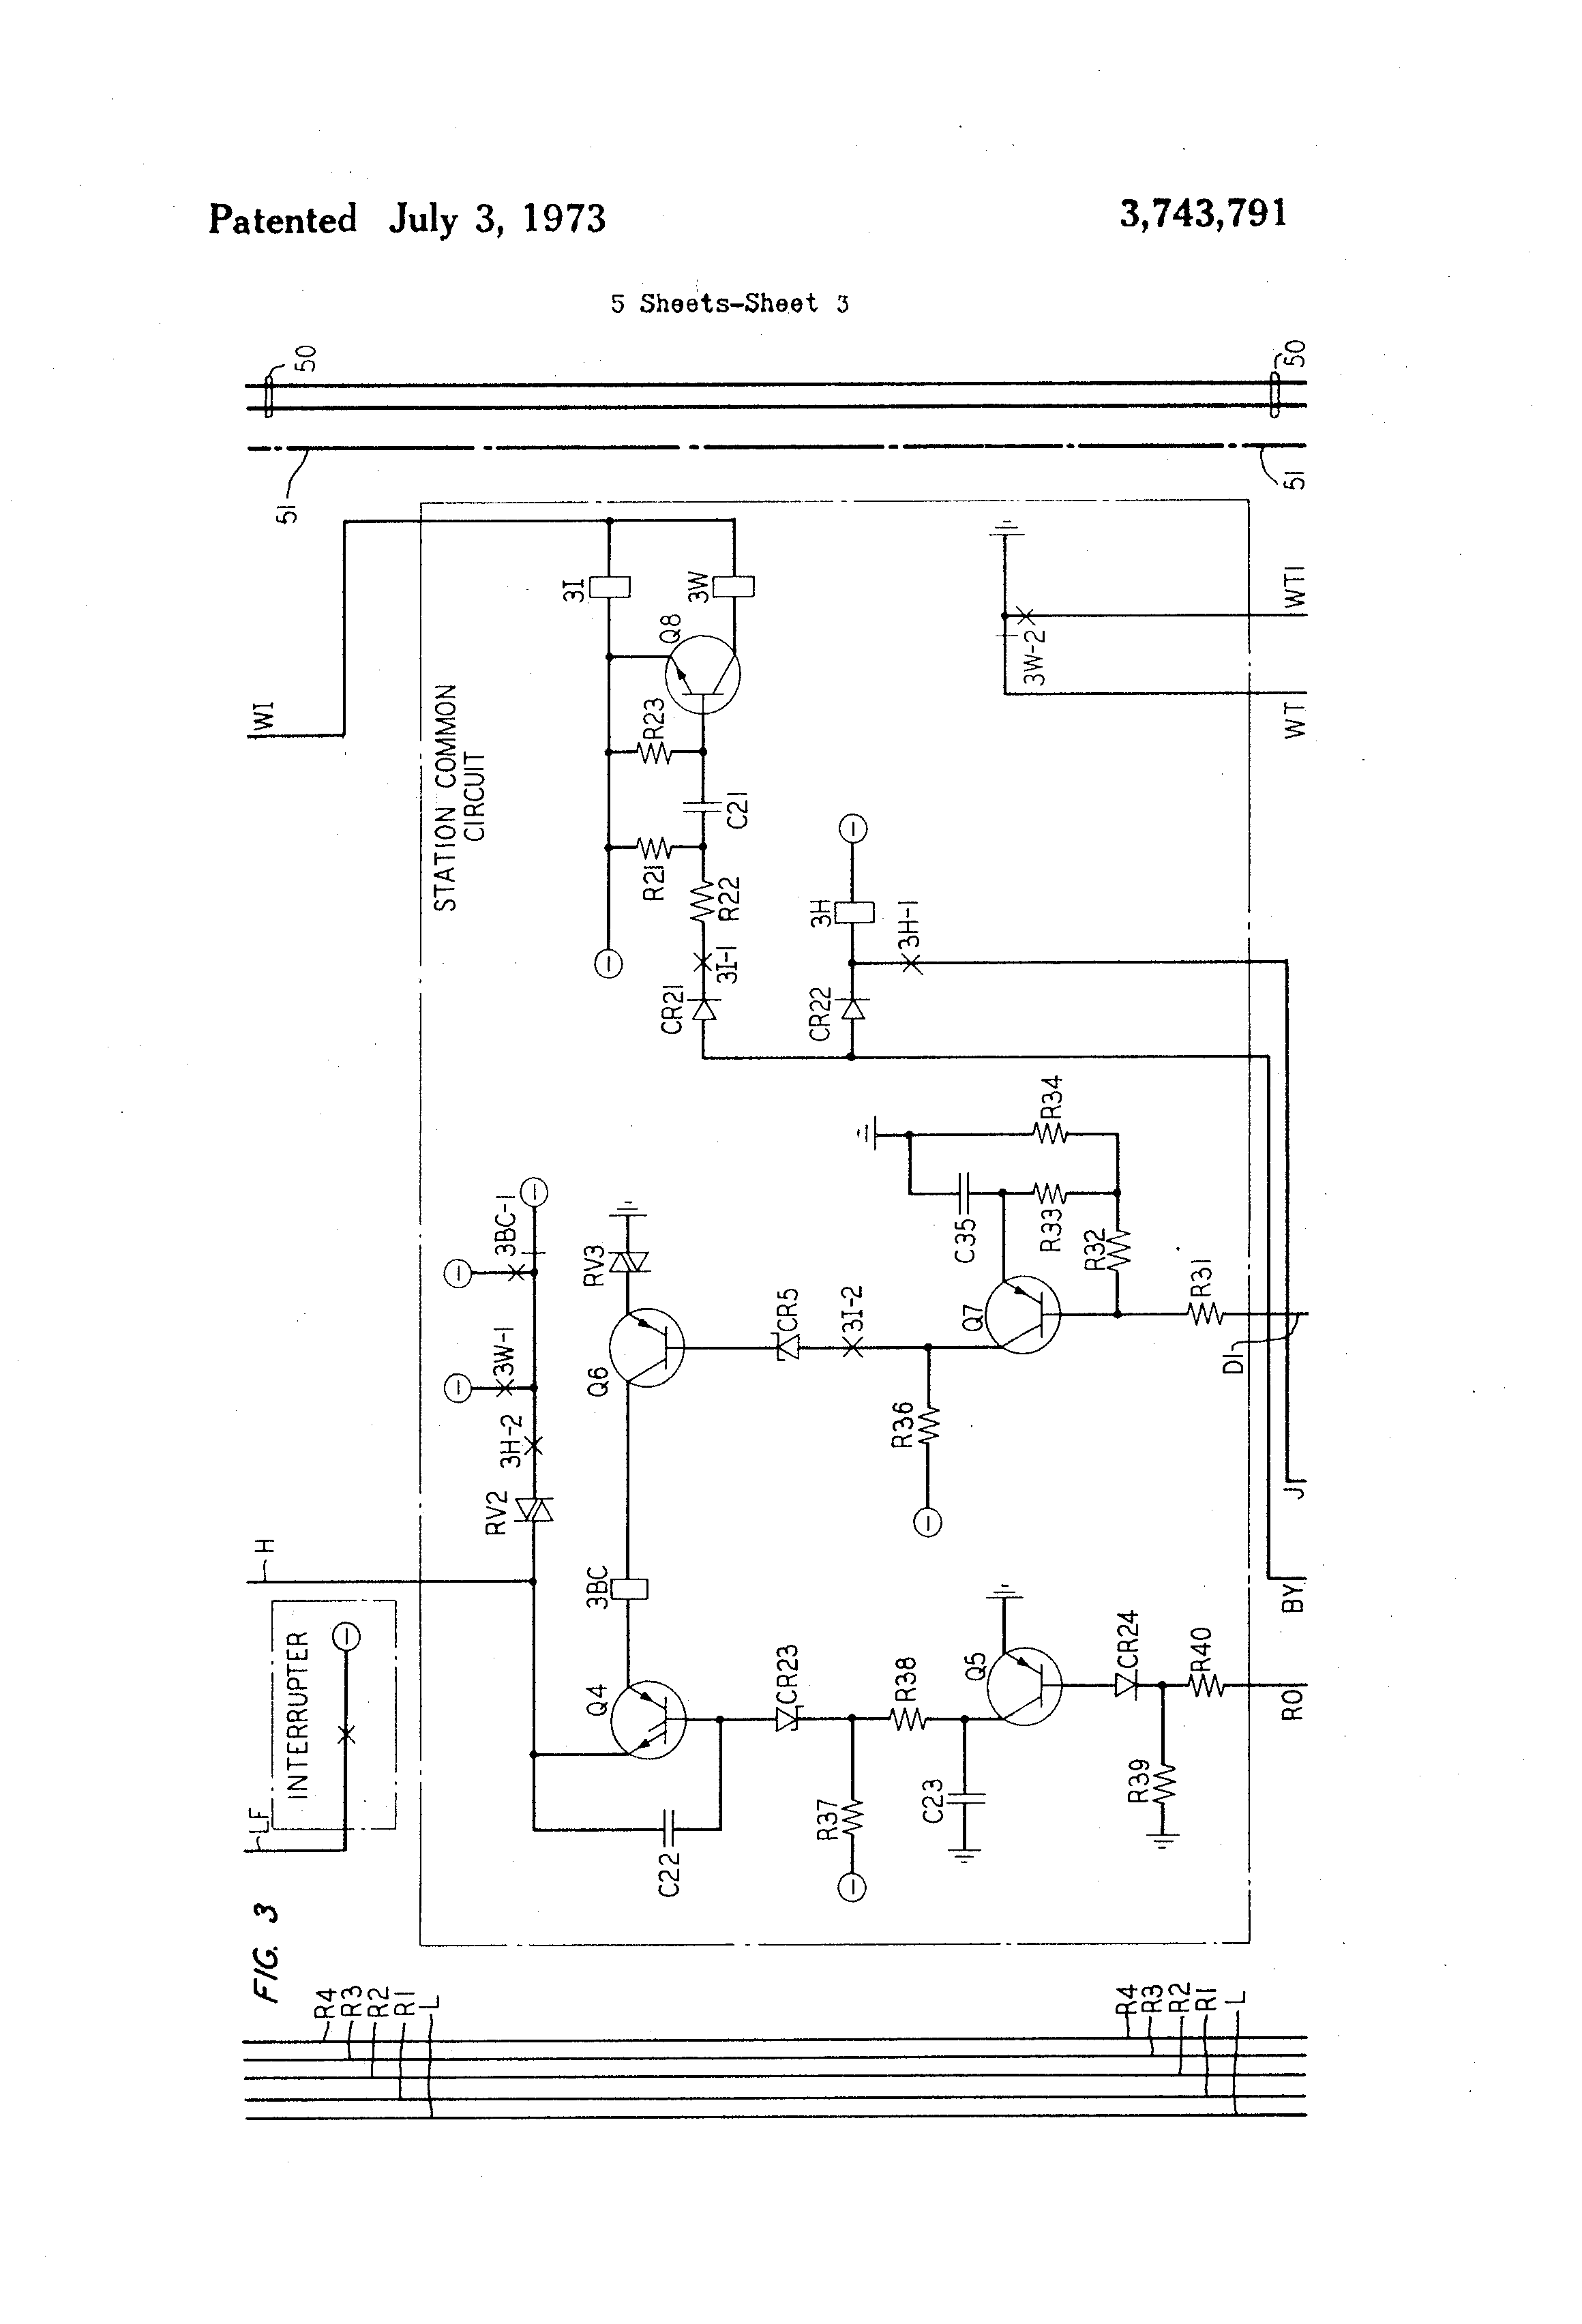 Brevet Us3743791 Control Arrangement For Hands Free Telephone Intercom Circuit With Transistors Simple Schematic Collection Patent Drawing